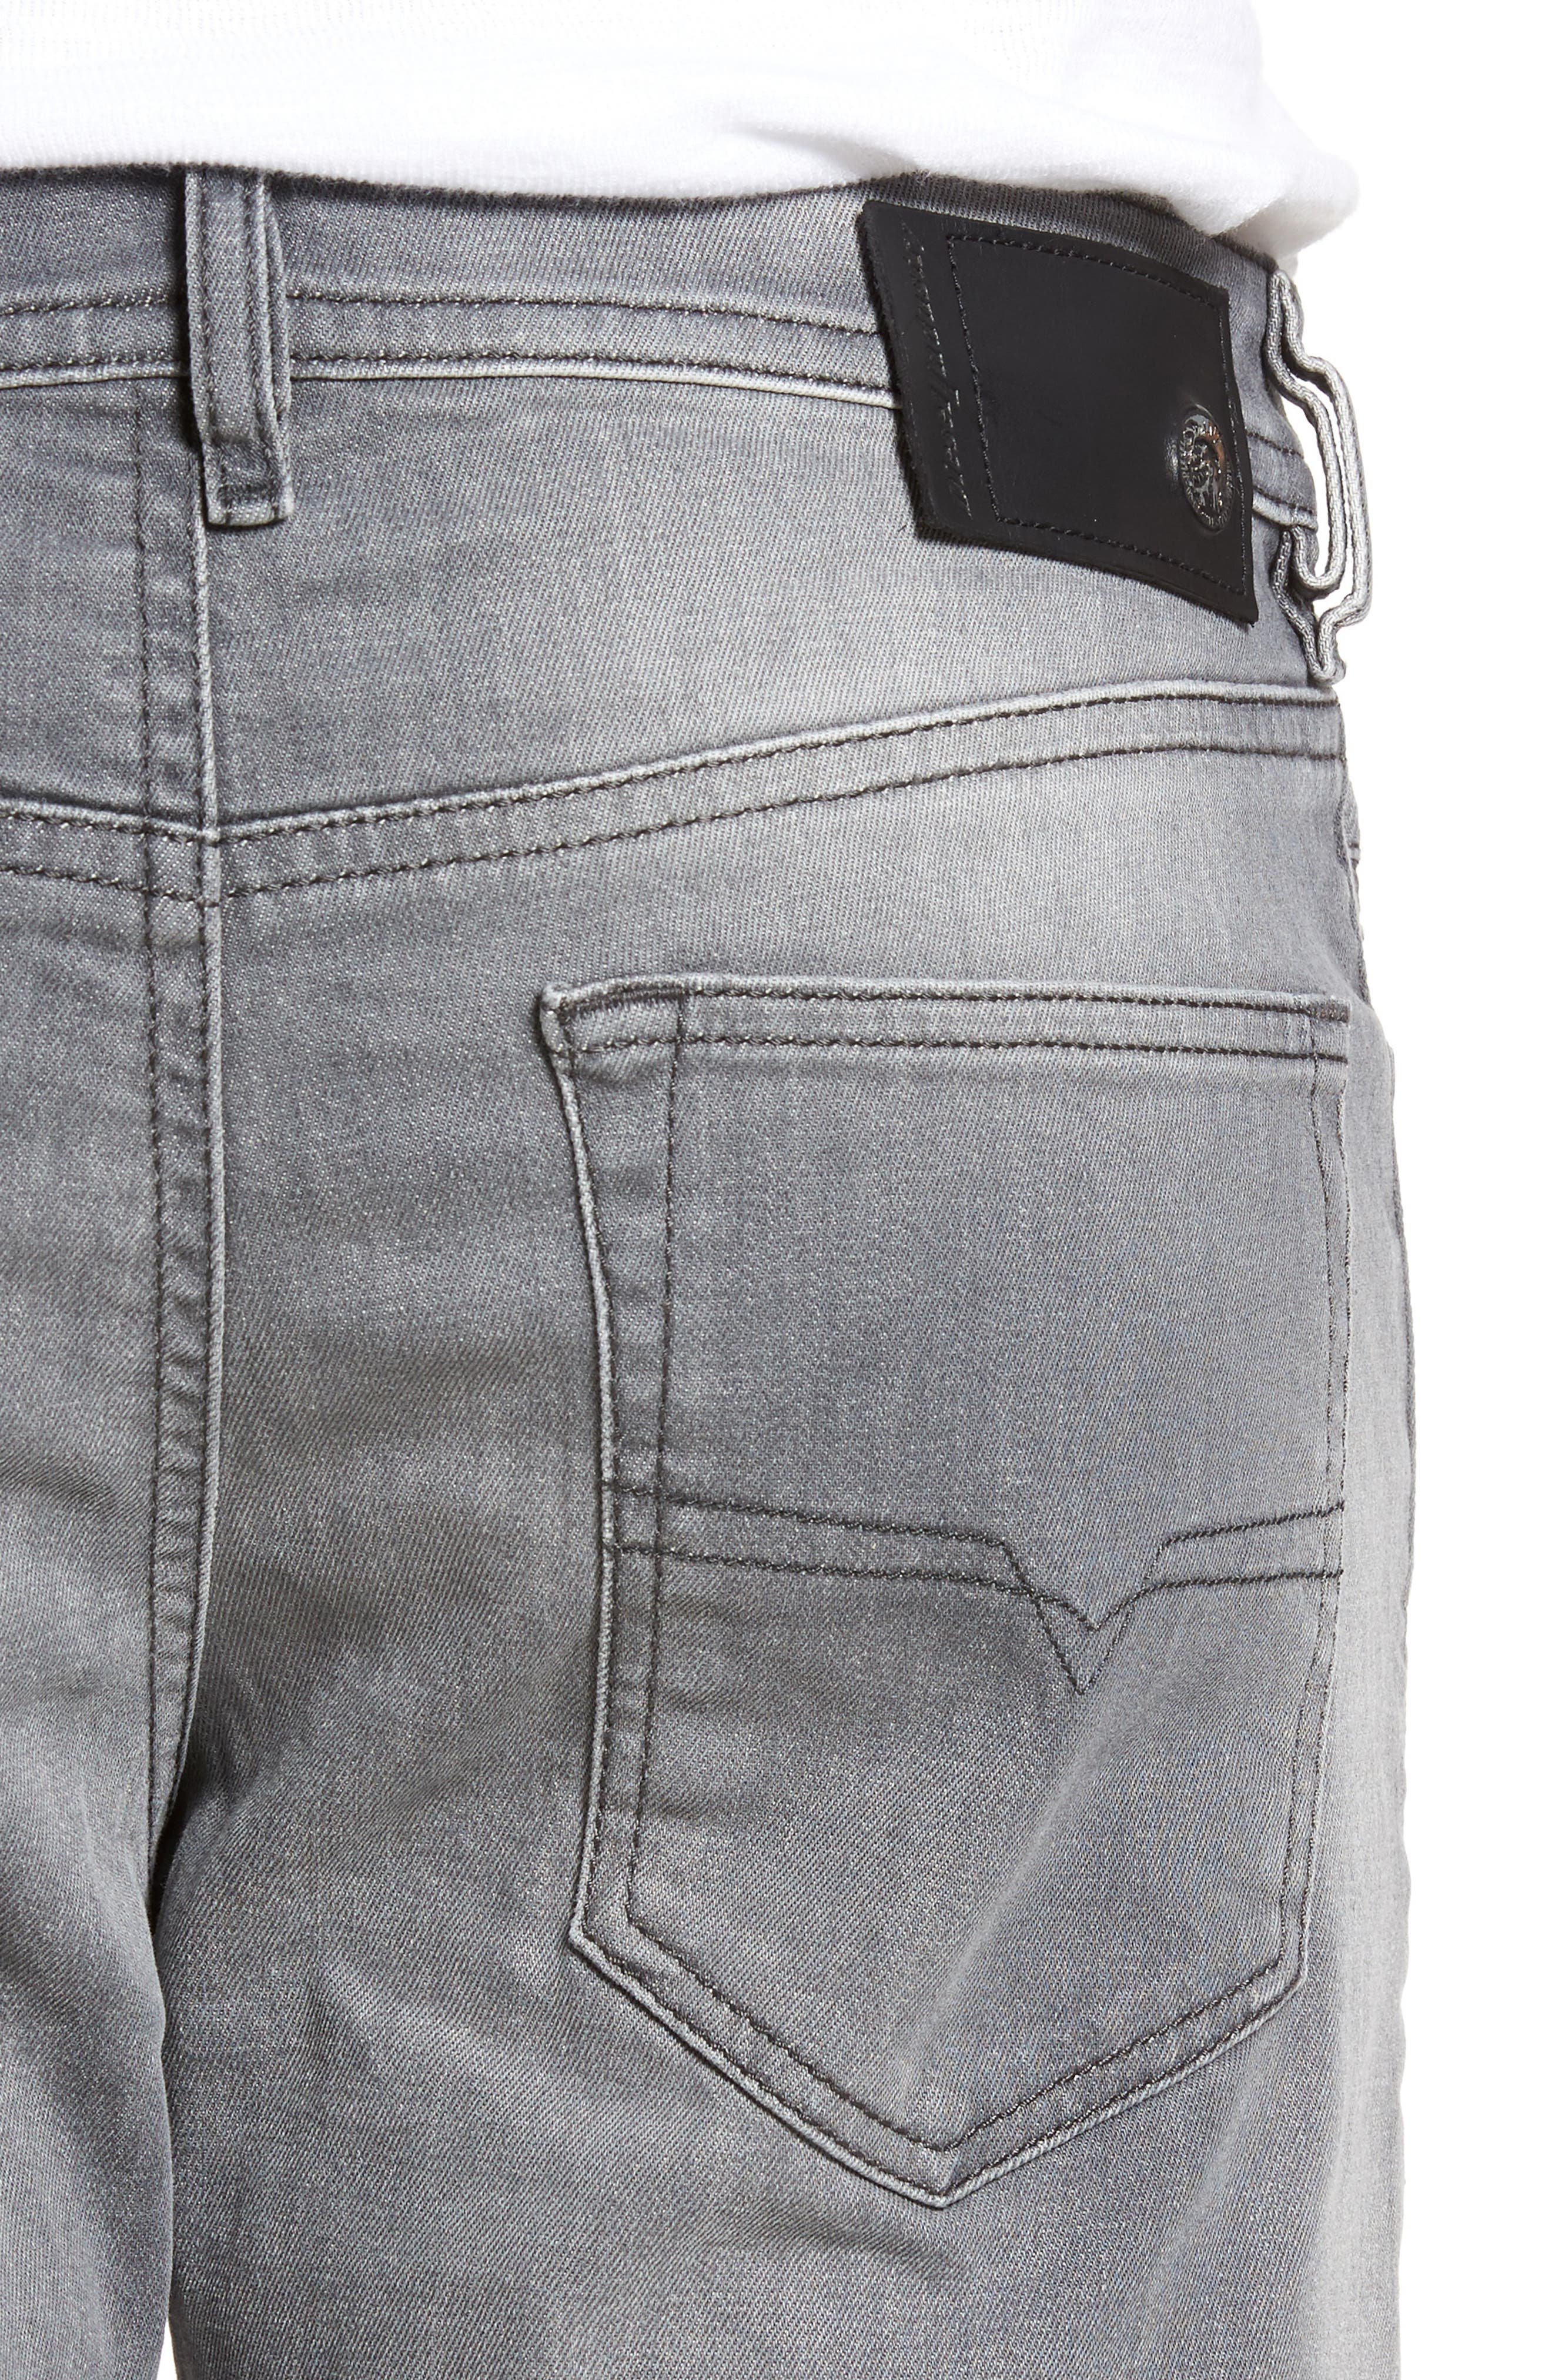 Buster Slim Straight Leg Jeans,                             Alternate thumbnail 4, color,                             084Hp